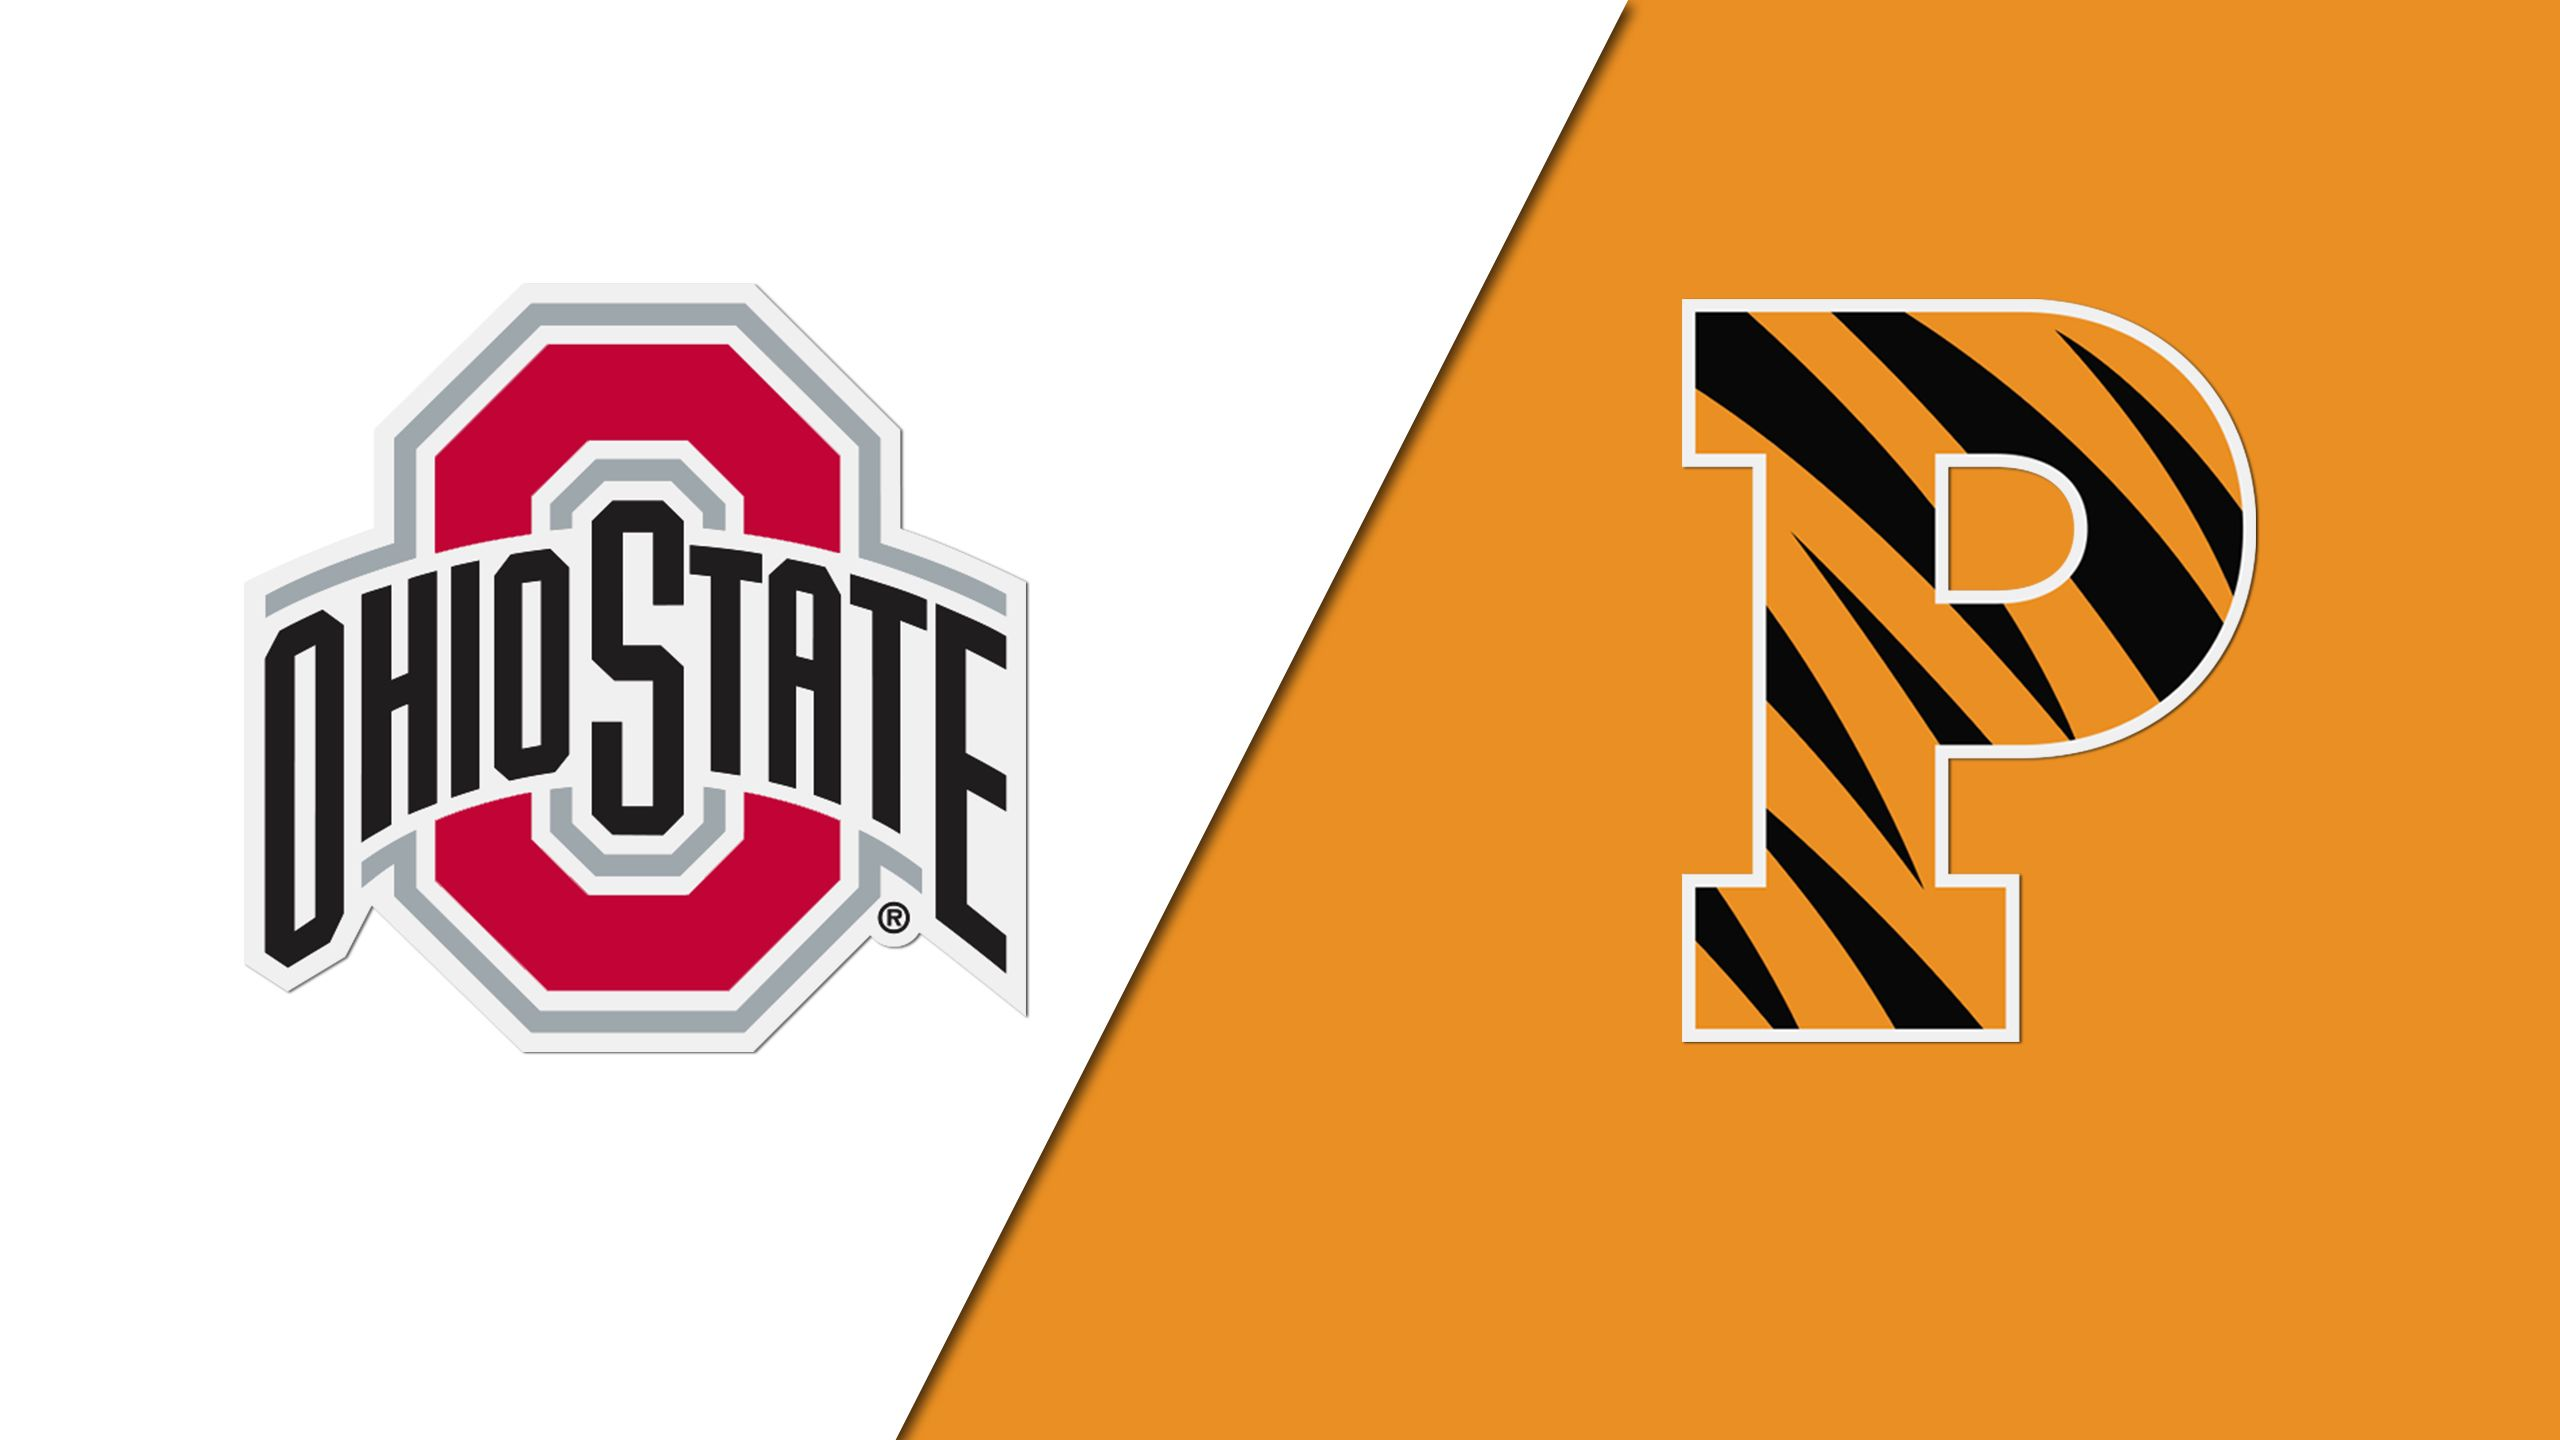 #1 Ohio State vs. #4 Princeton (Midwest Regional Semifinal #1) (NCAA Men's Hockey Championship)